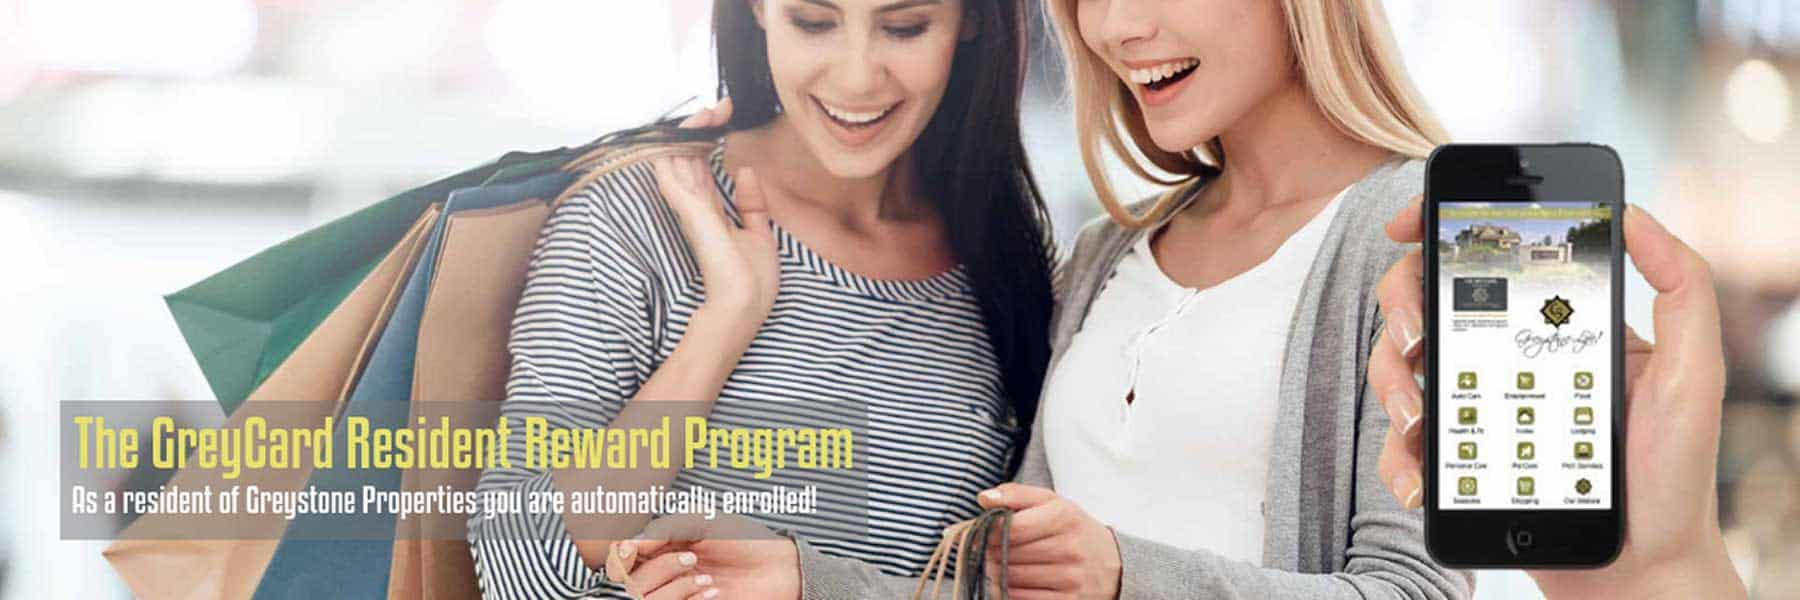 Greystone Apartments in Columbus GA offer The GreyCard Resident Reward Program